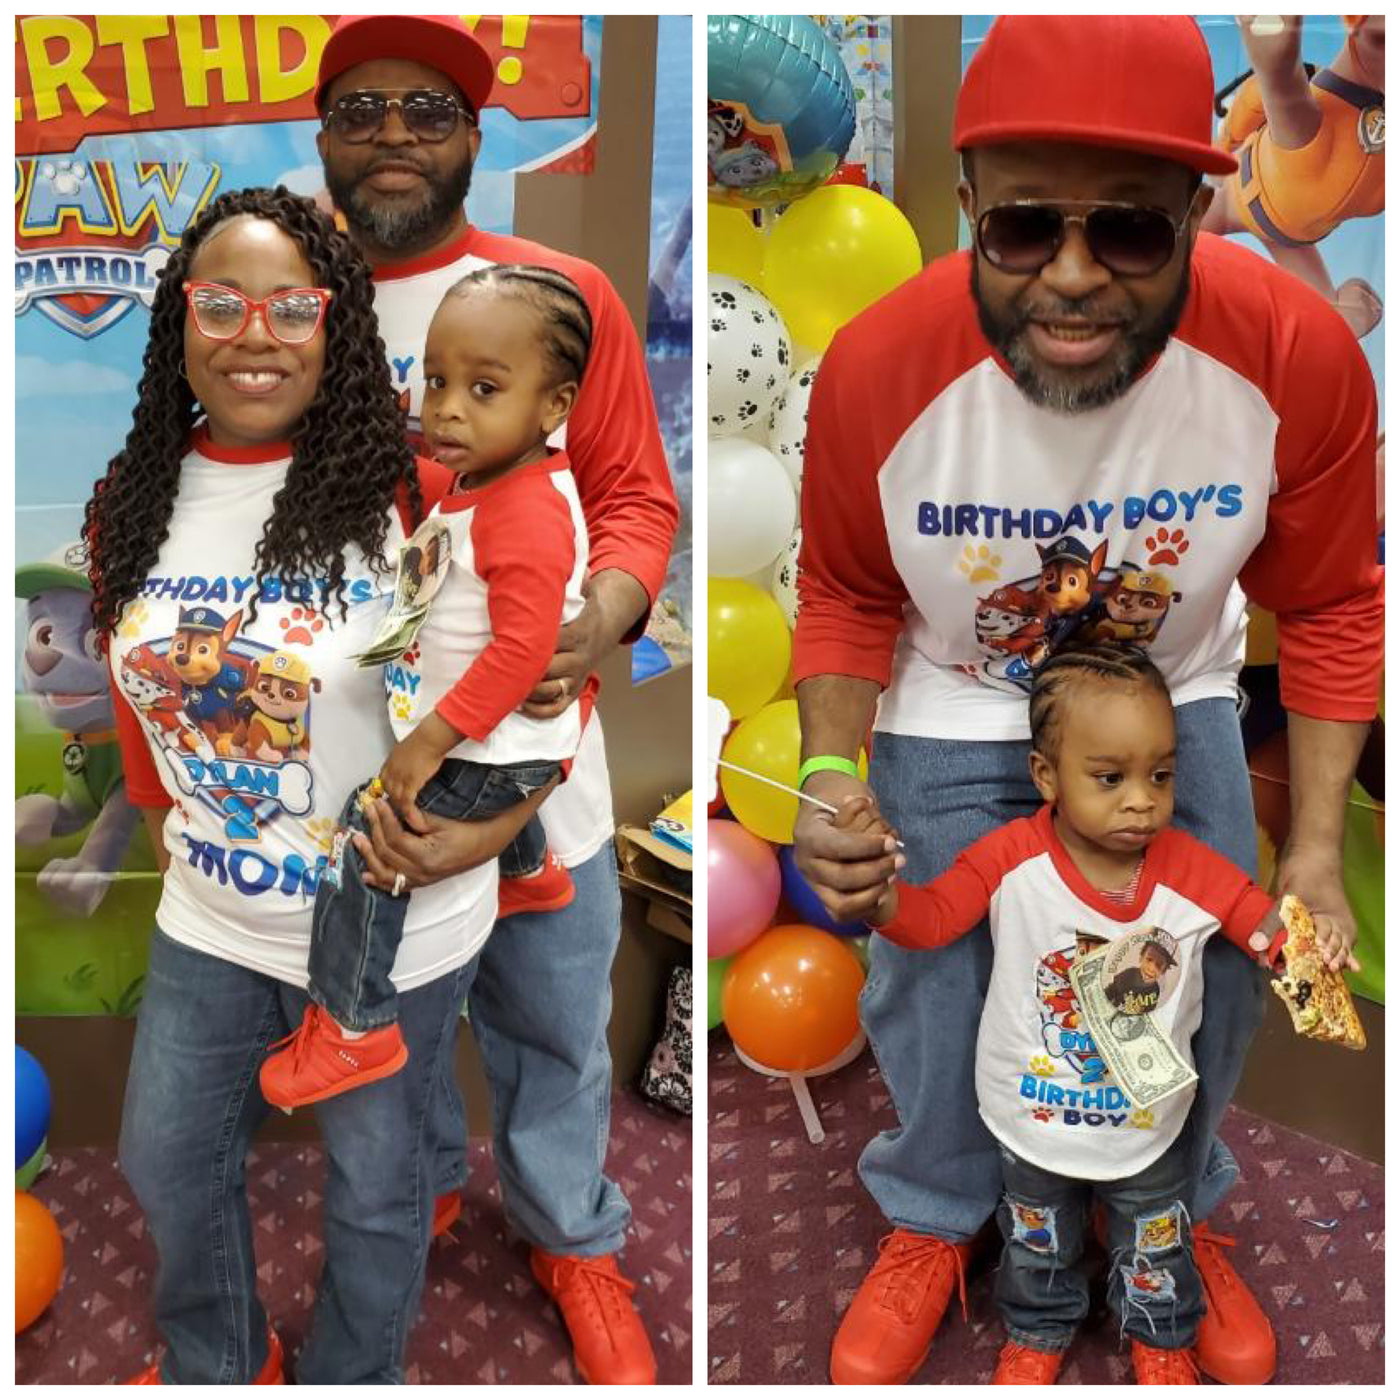 We make custom kids birthday party shirts come with any cartoon character or theme. Any color shirt, Free Custom Text any font. send us the cartoon theme you want to use and we'll customize a design for you. any size shirt.